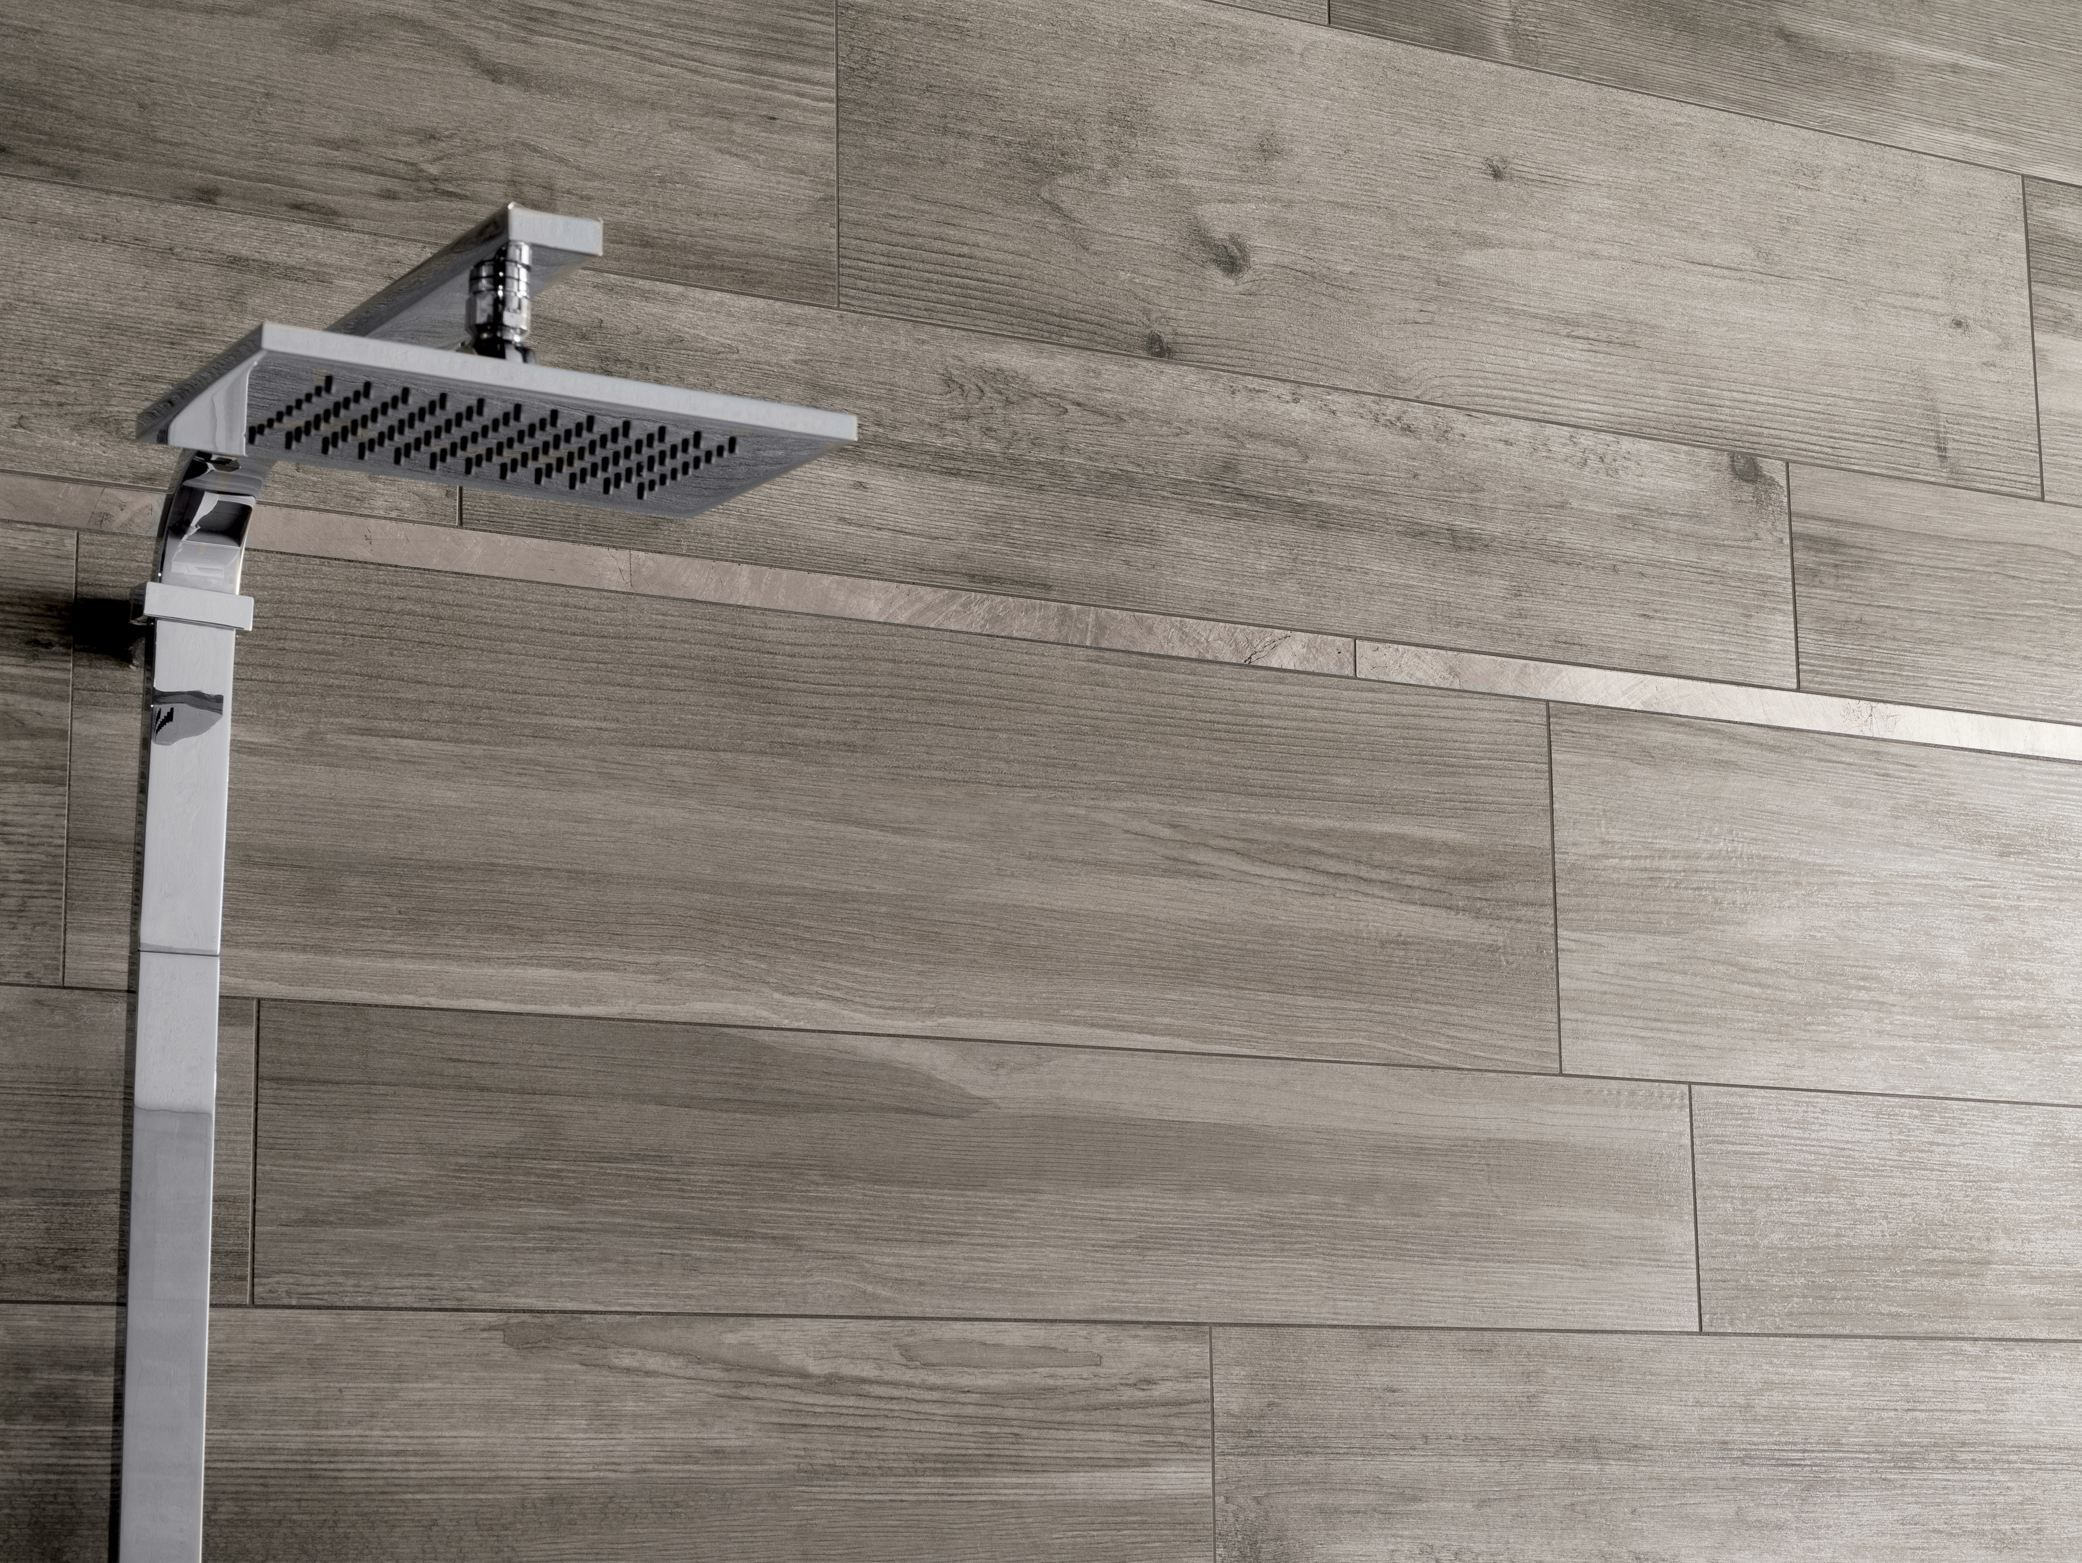 Wood effect flooring for bathrooms - Porcelain Stoneware Wall Floor Tiles With Wood Effect Larix Ariana Ceramica Italiana